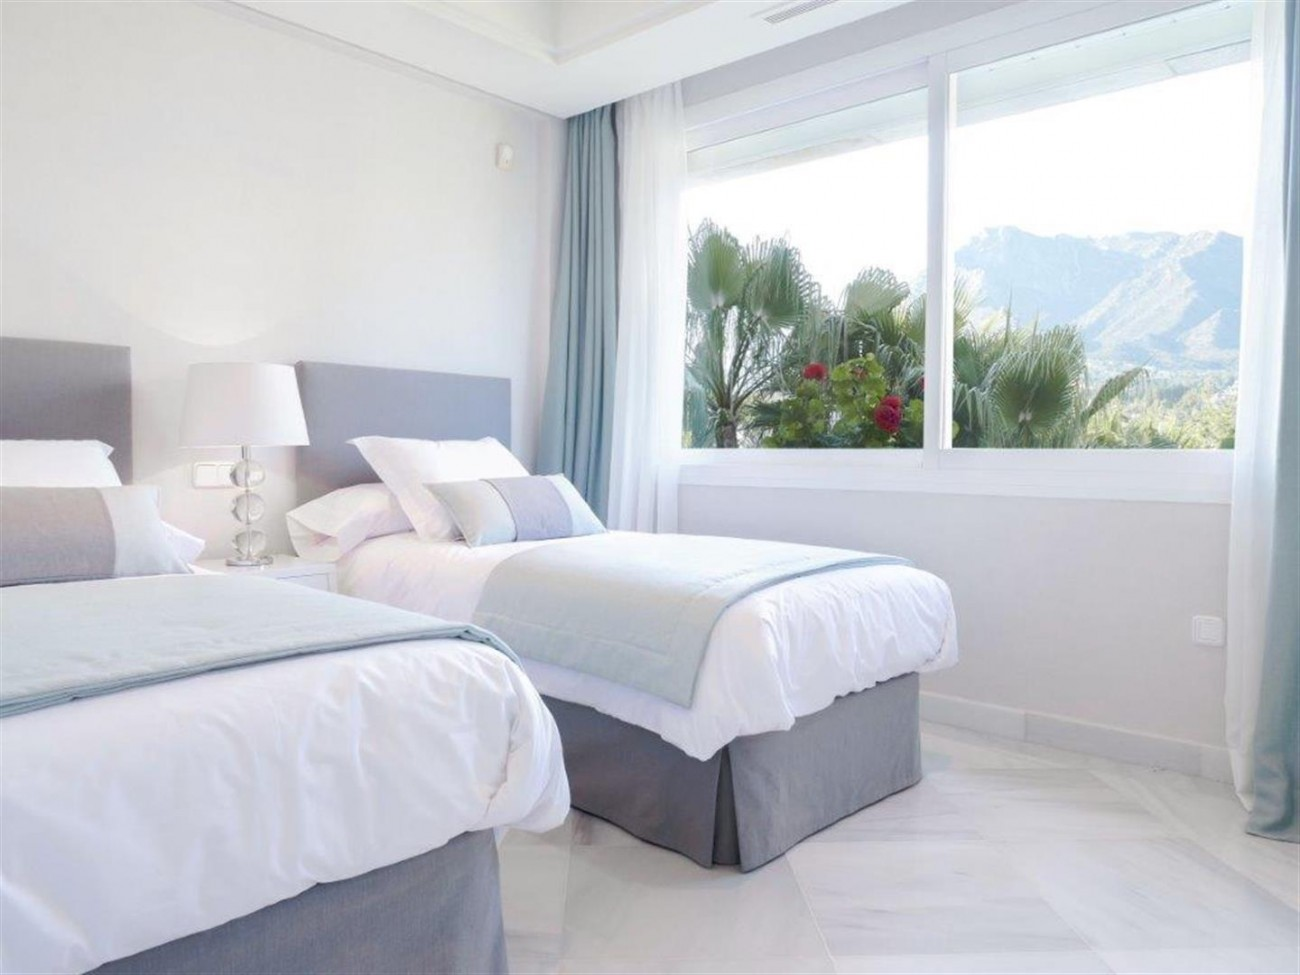 A5580 Frontline beach apartment Marbella 4 (Large)